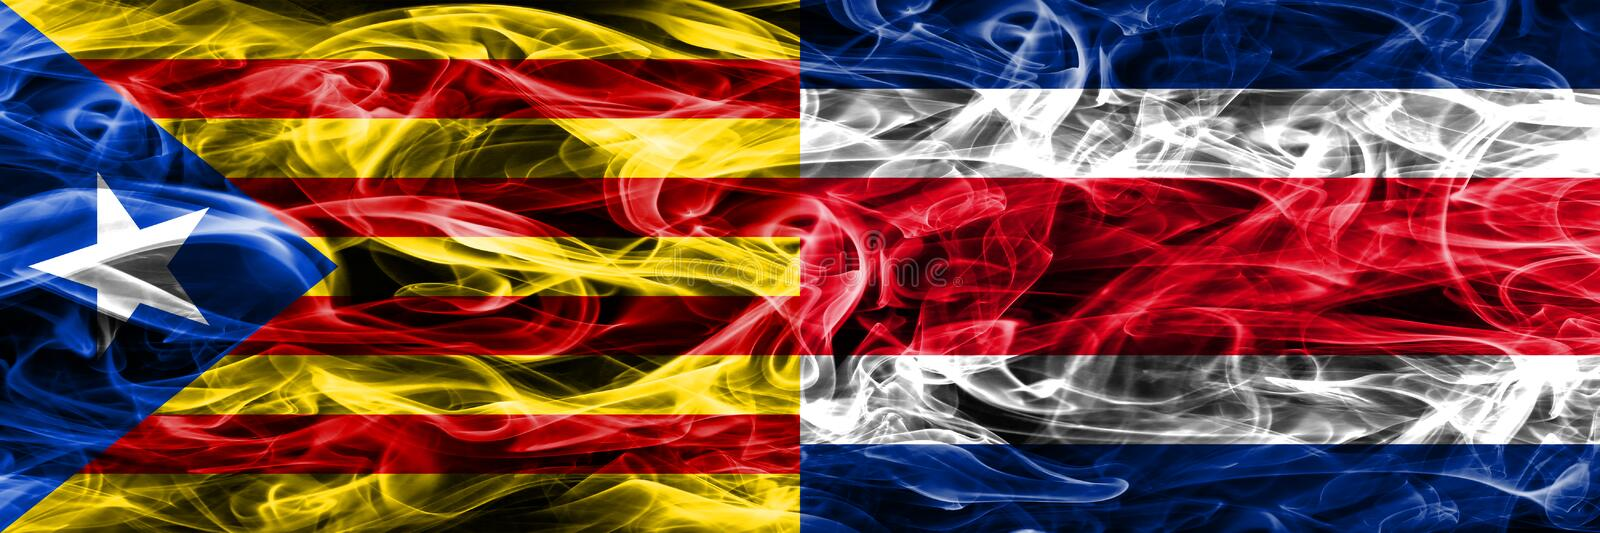 Catalonia vs Costa Rica copy smoke flags placed side by side. Thick colored silky smoke flags of Catalan and Costa Rica copy.  royalty free illustration